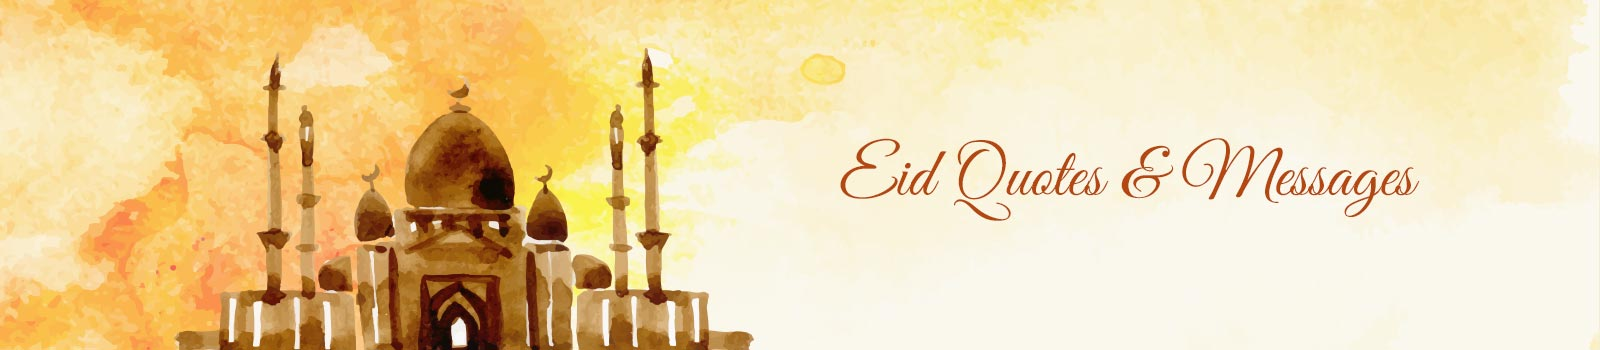 Eid Quotes Banner